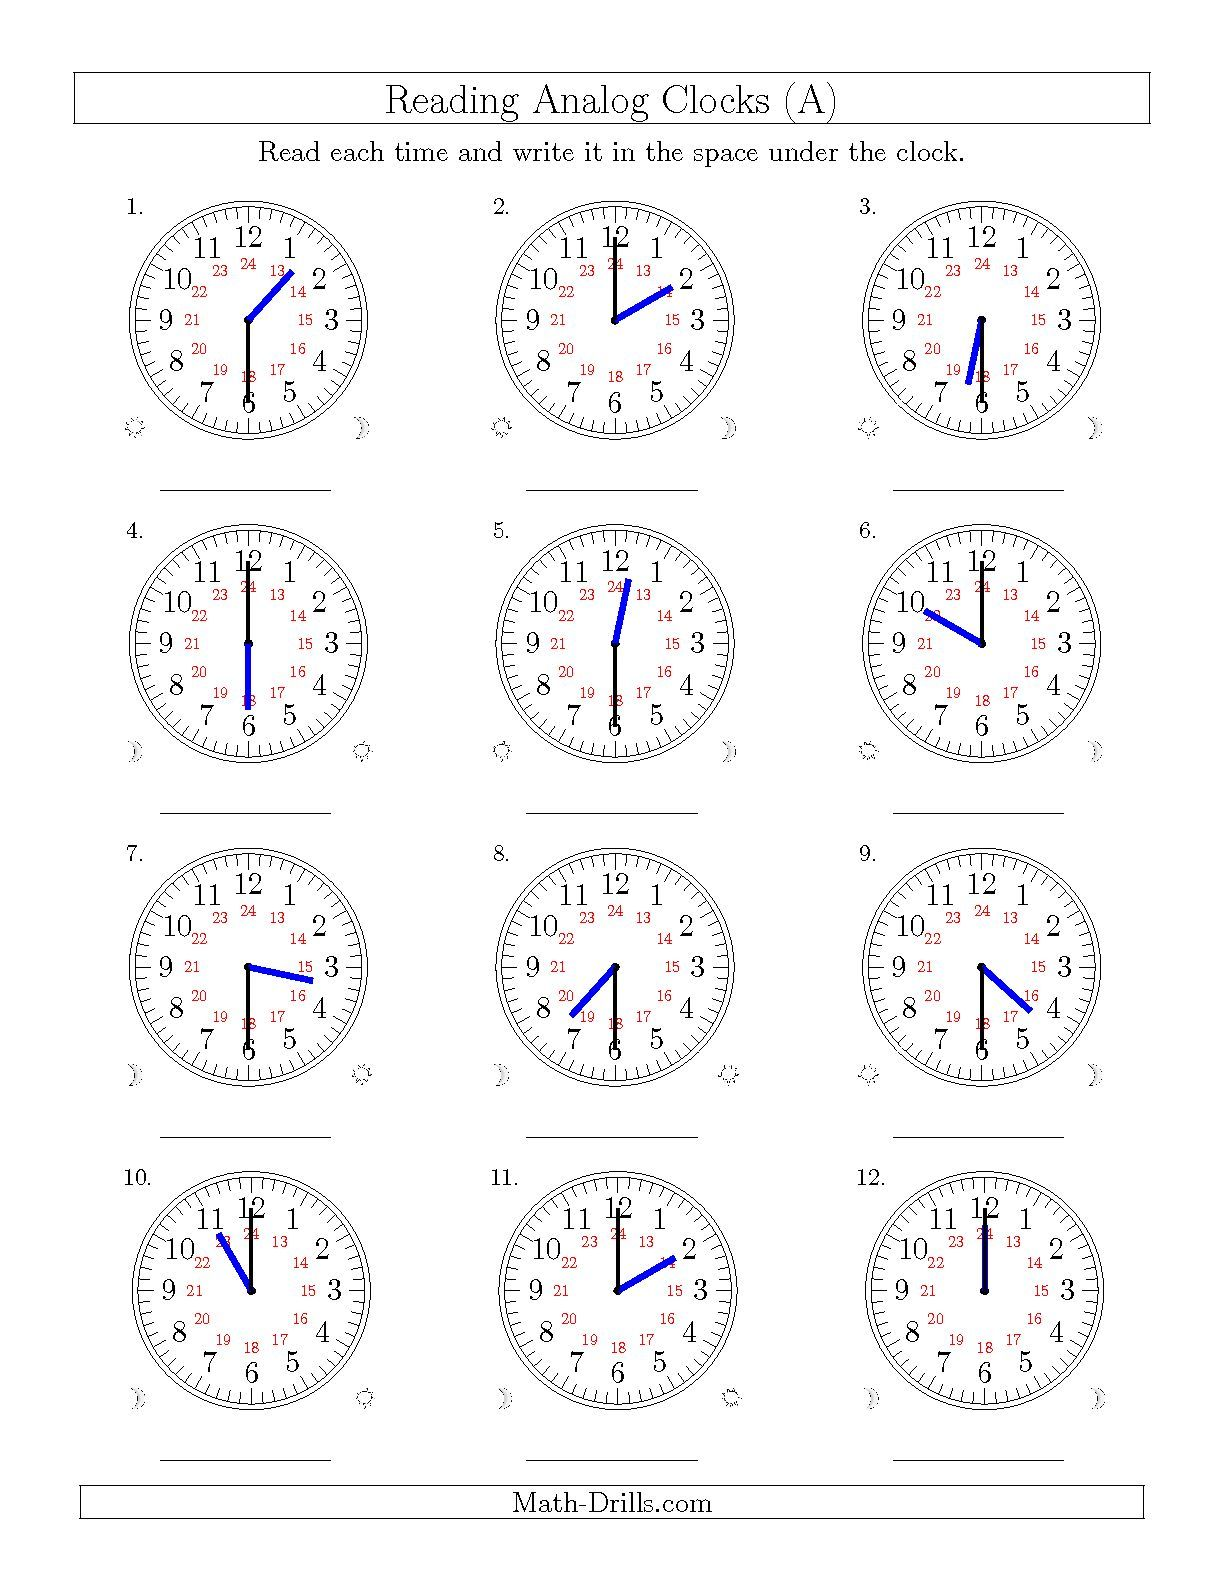 worksheet Time To The Half Hour Worksheets the reading time on 24 hour analog clocks in half intervals a a